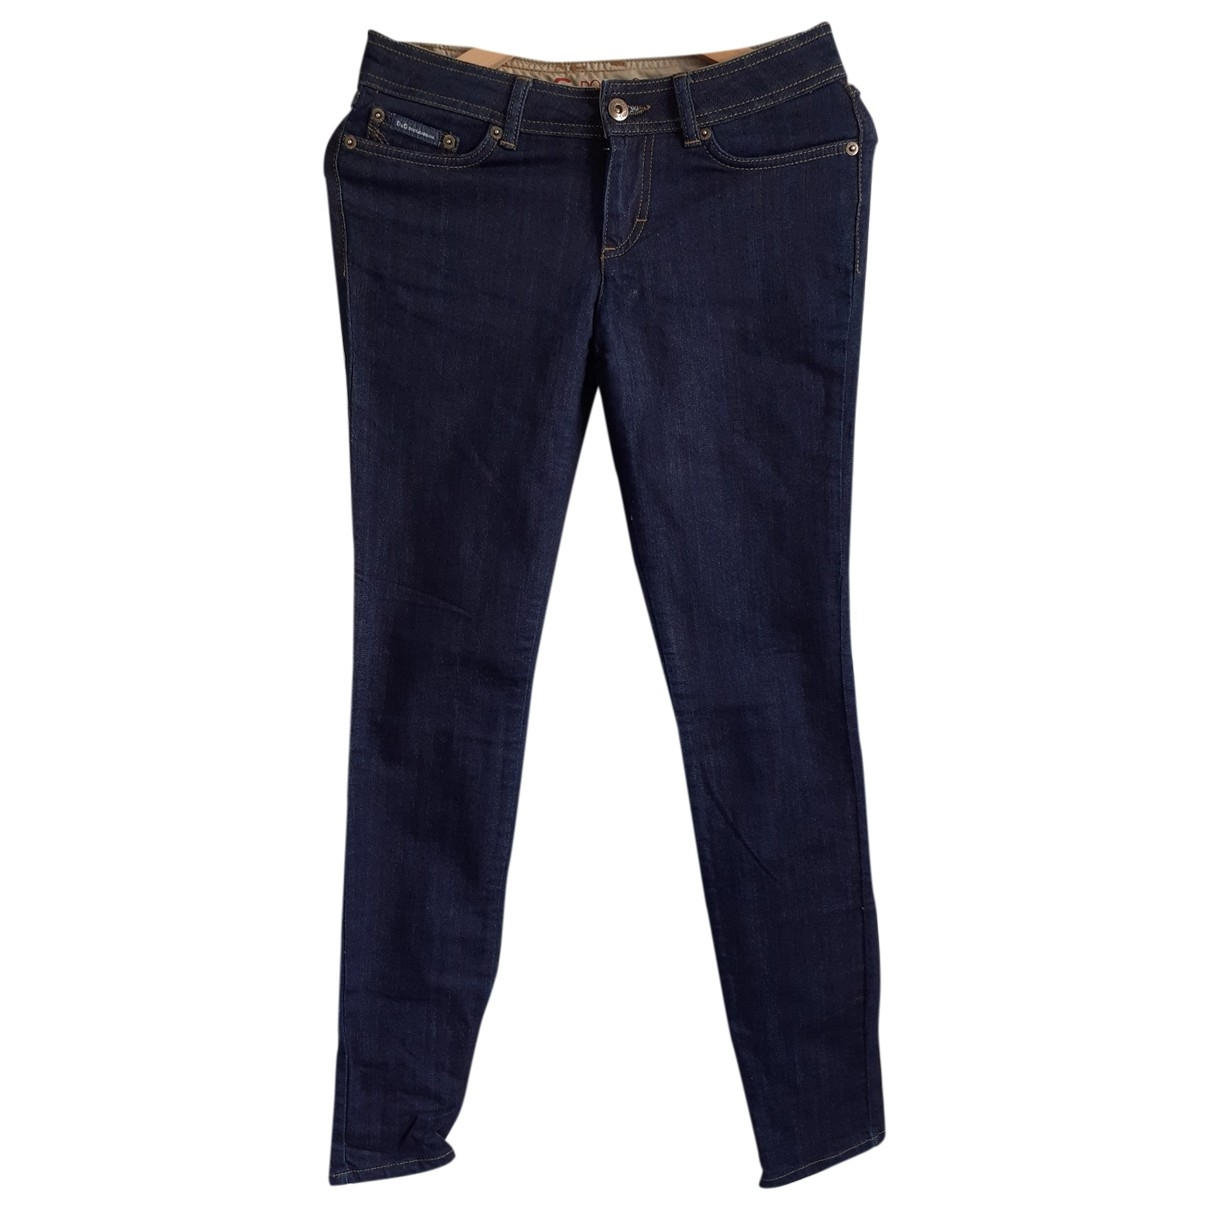 D&g \N Blue Cotton - elasthane Jeans for Women 38 FR